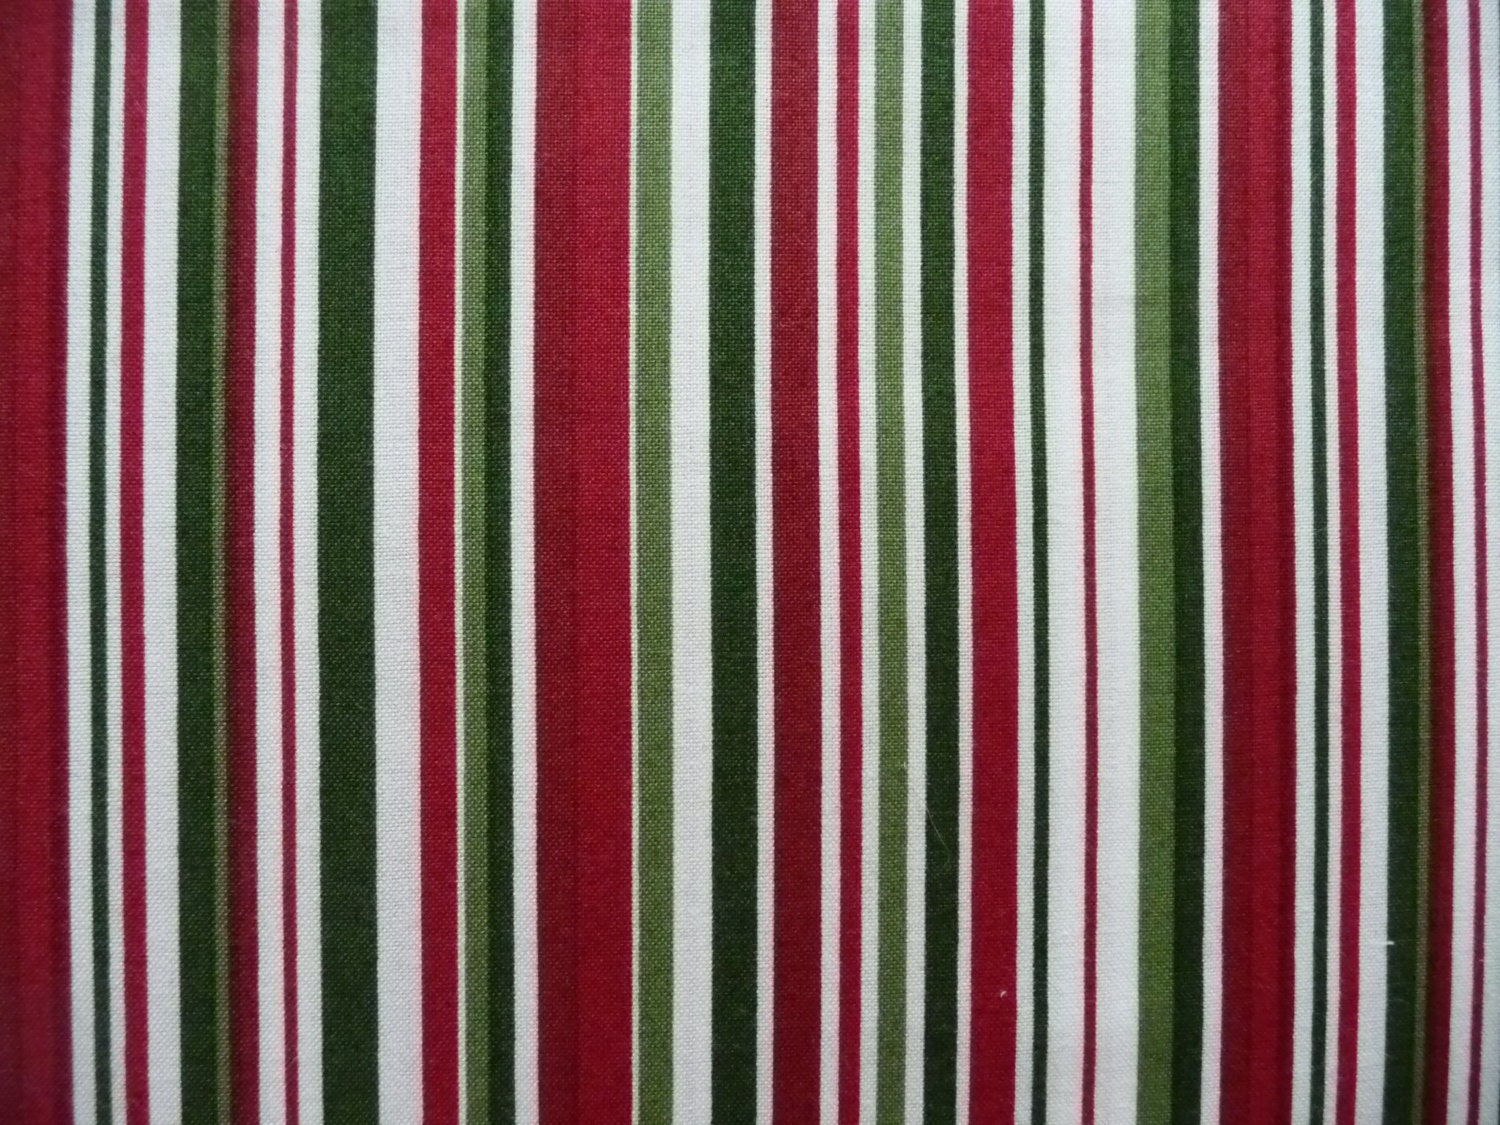 Quilt Patterns Using Stripe Fabric : Striped Quilt Fabric Maywood Basically Beautiful 616W